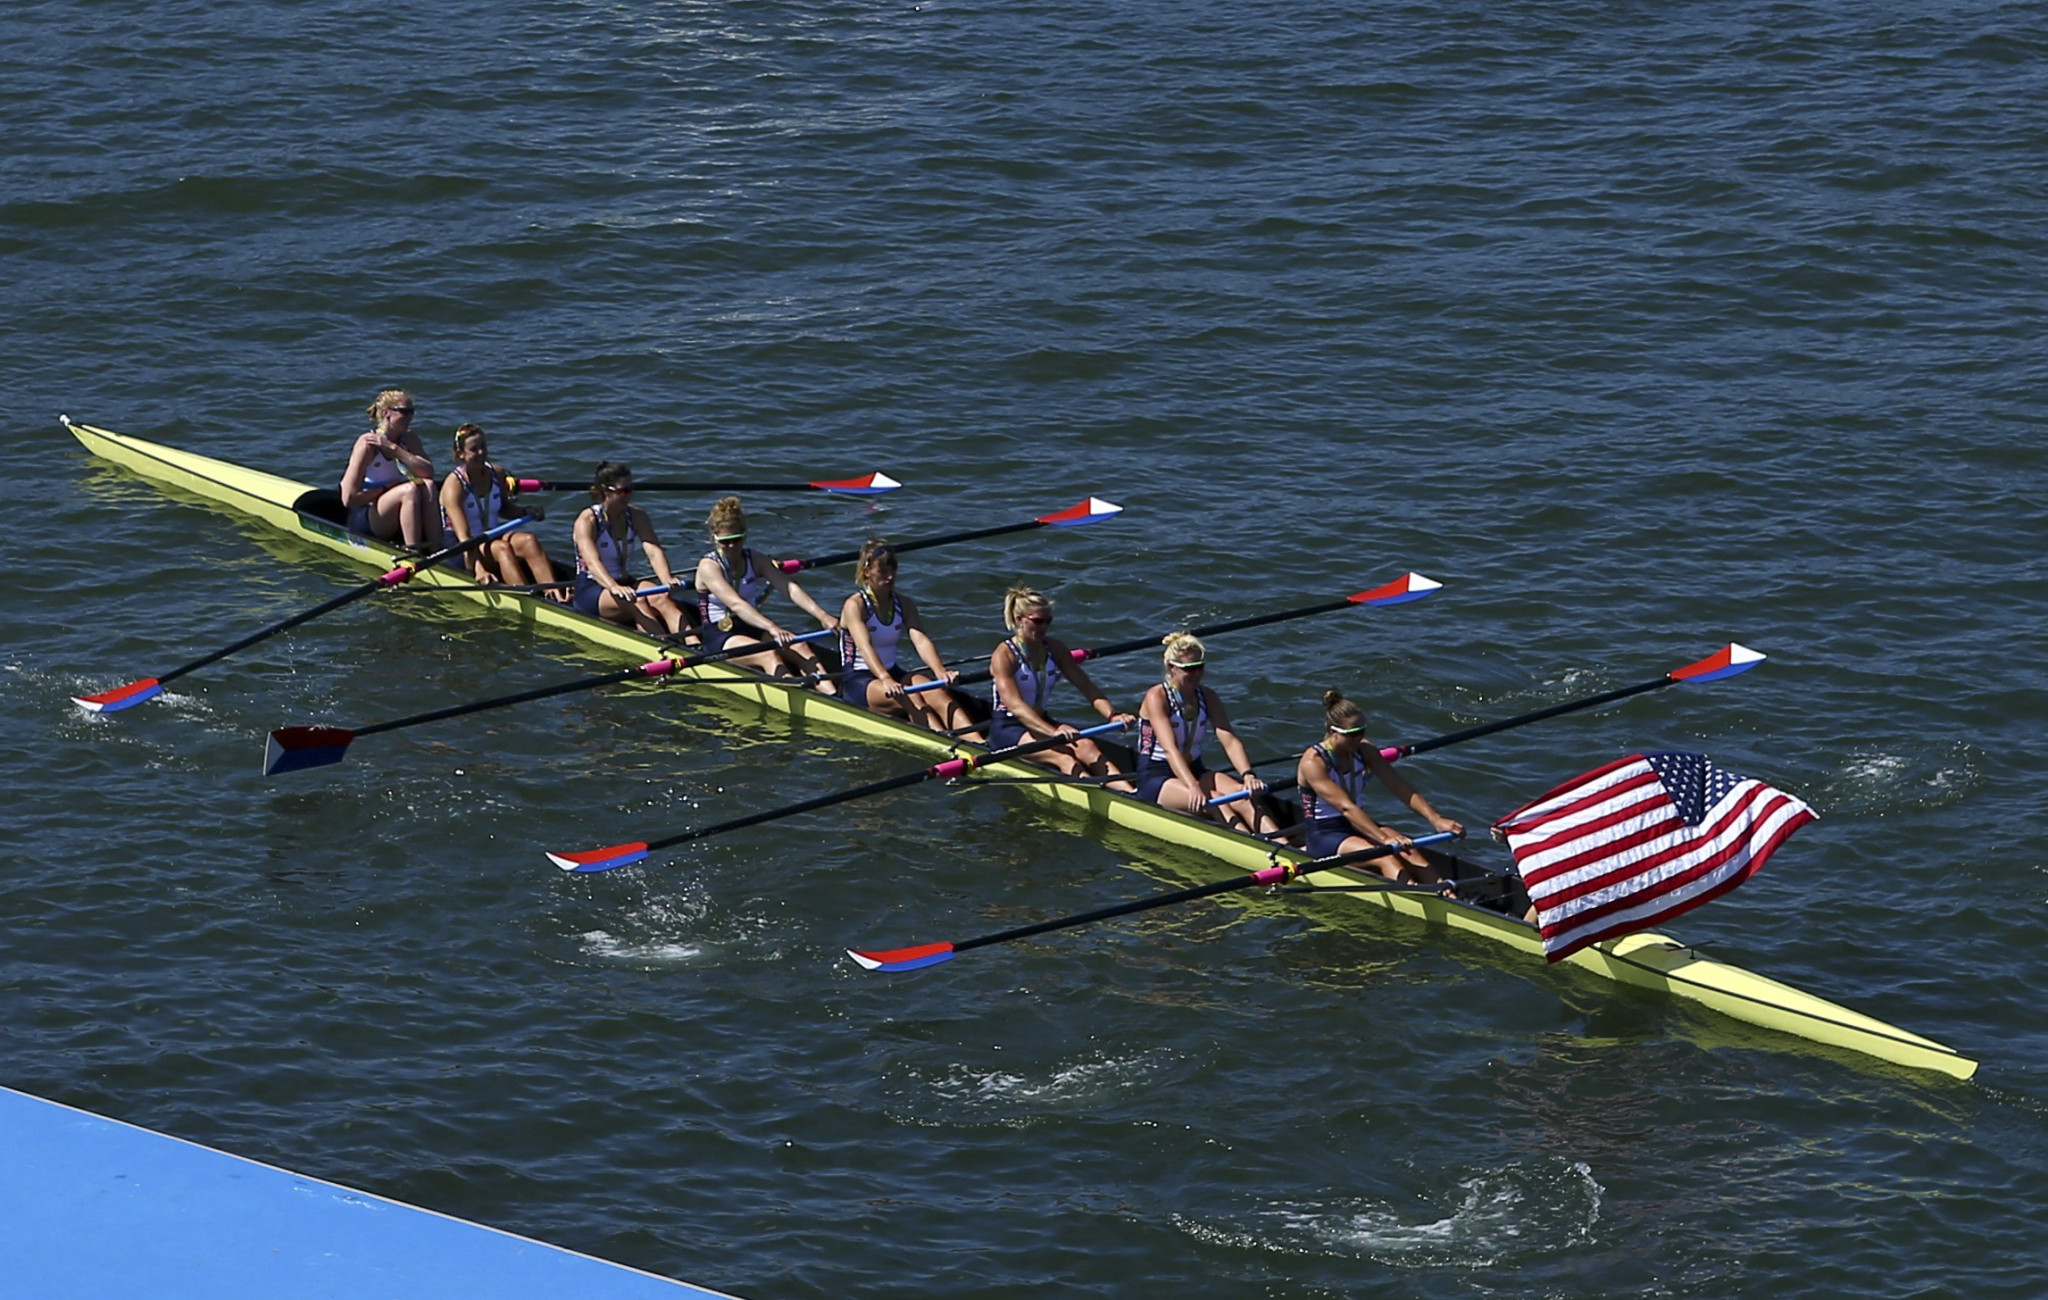 Los Angeles 2028 rowing events may be switched to 1932 Olympic venue in Long Beach